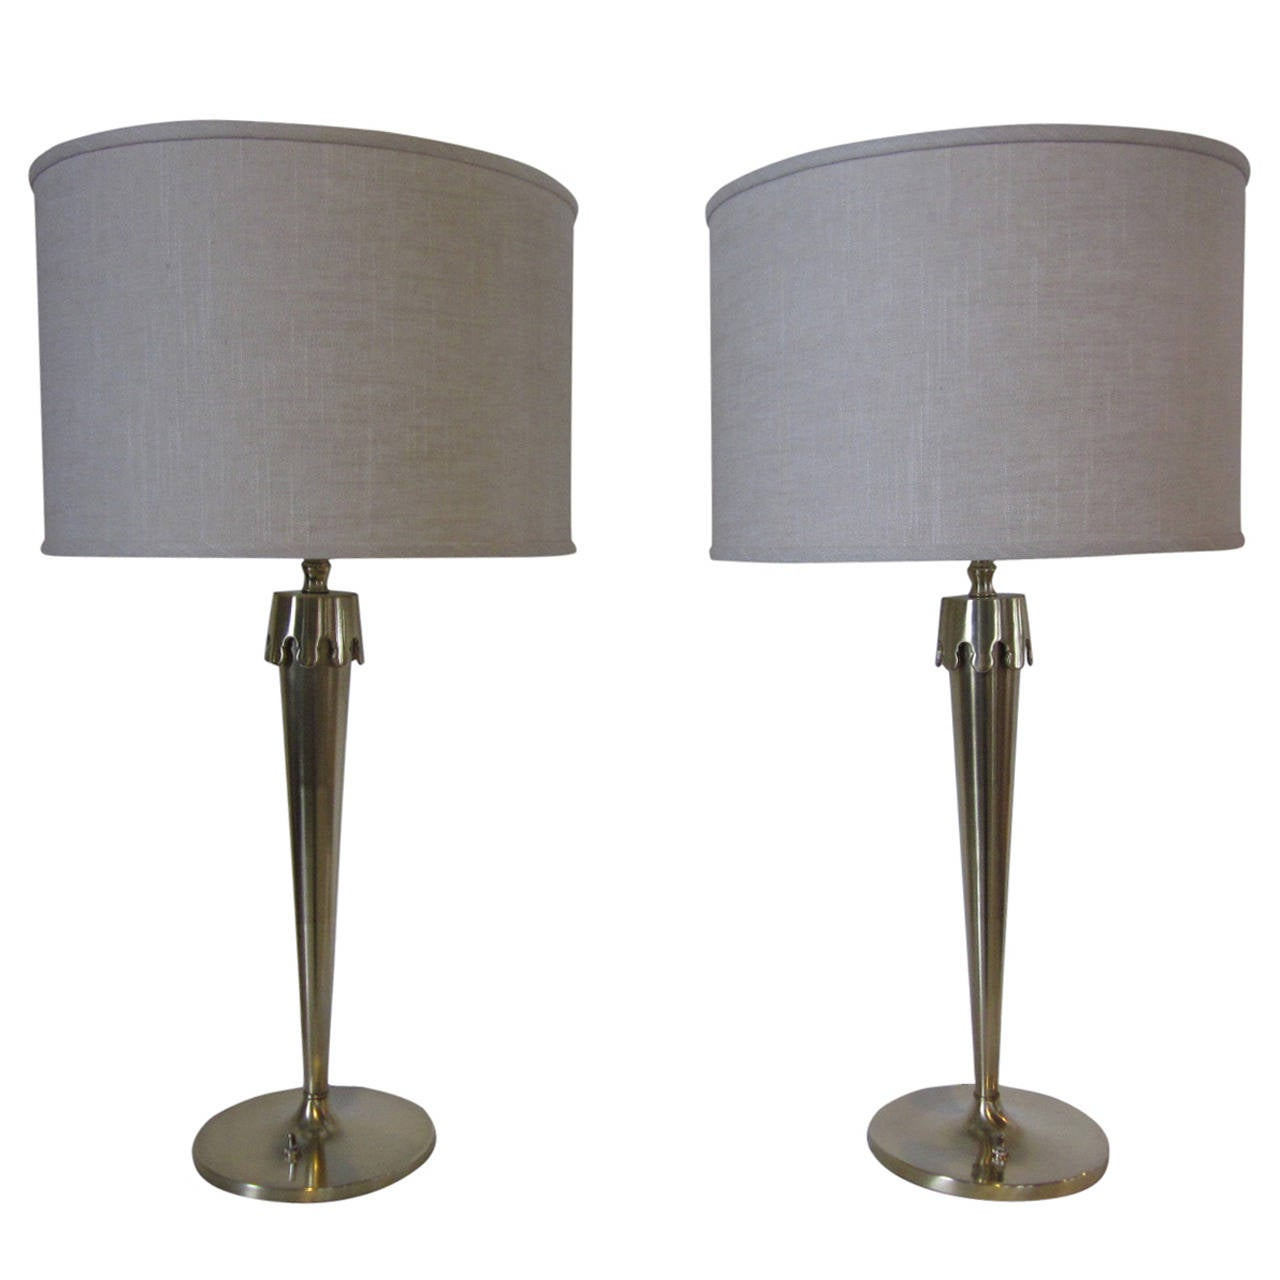 Amazing Stylish Table Lamp  Home Decorators Collection